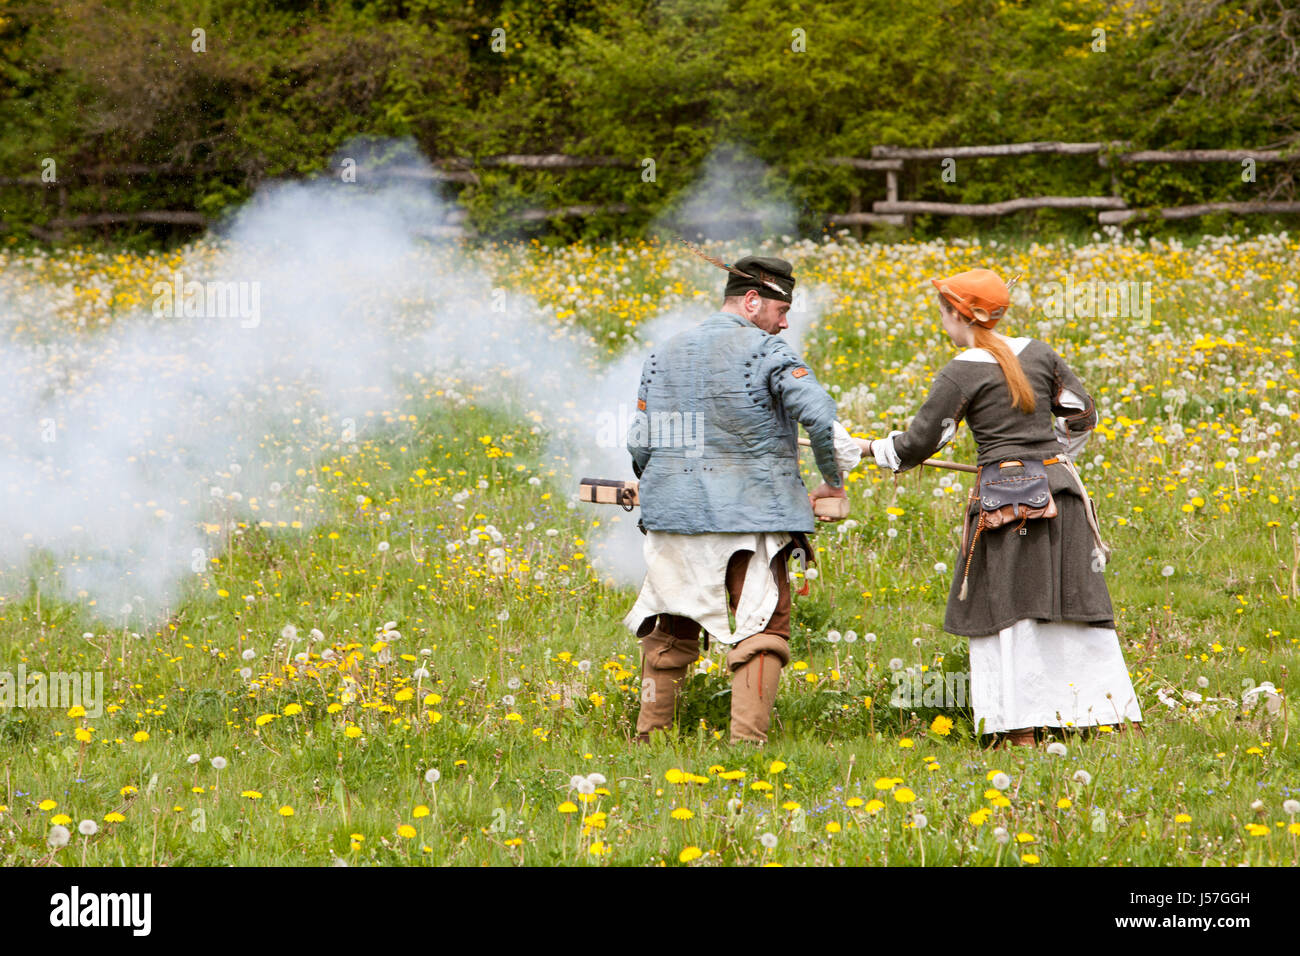 Hand cannons being fired by a reenactment group, reconstructed medieval house, Nienover, Bodenfelde, Lower Saxony, - Stock Image